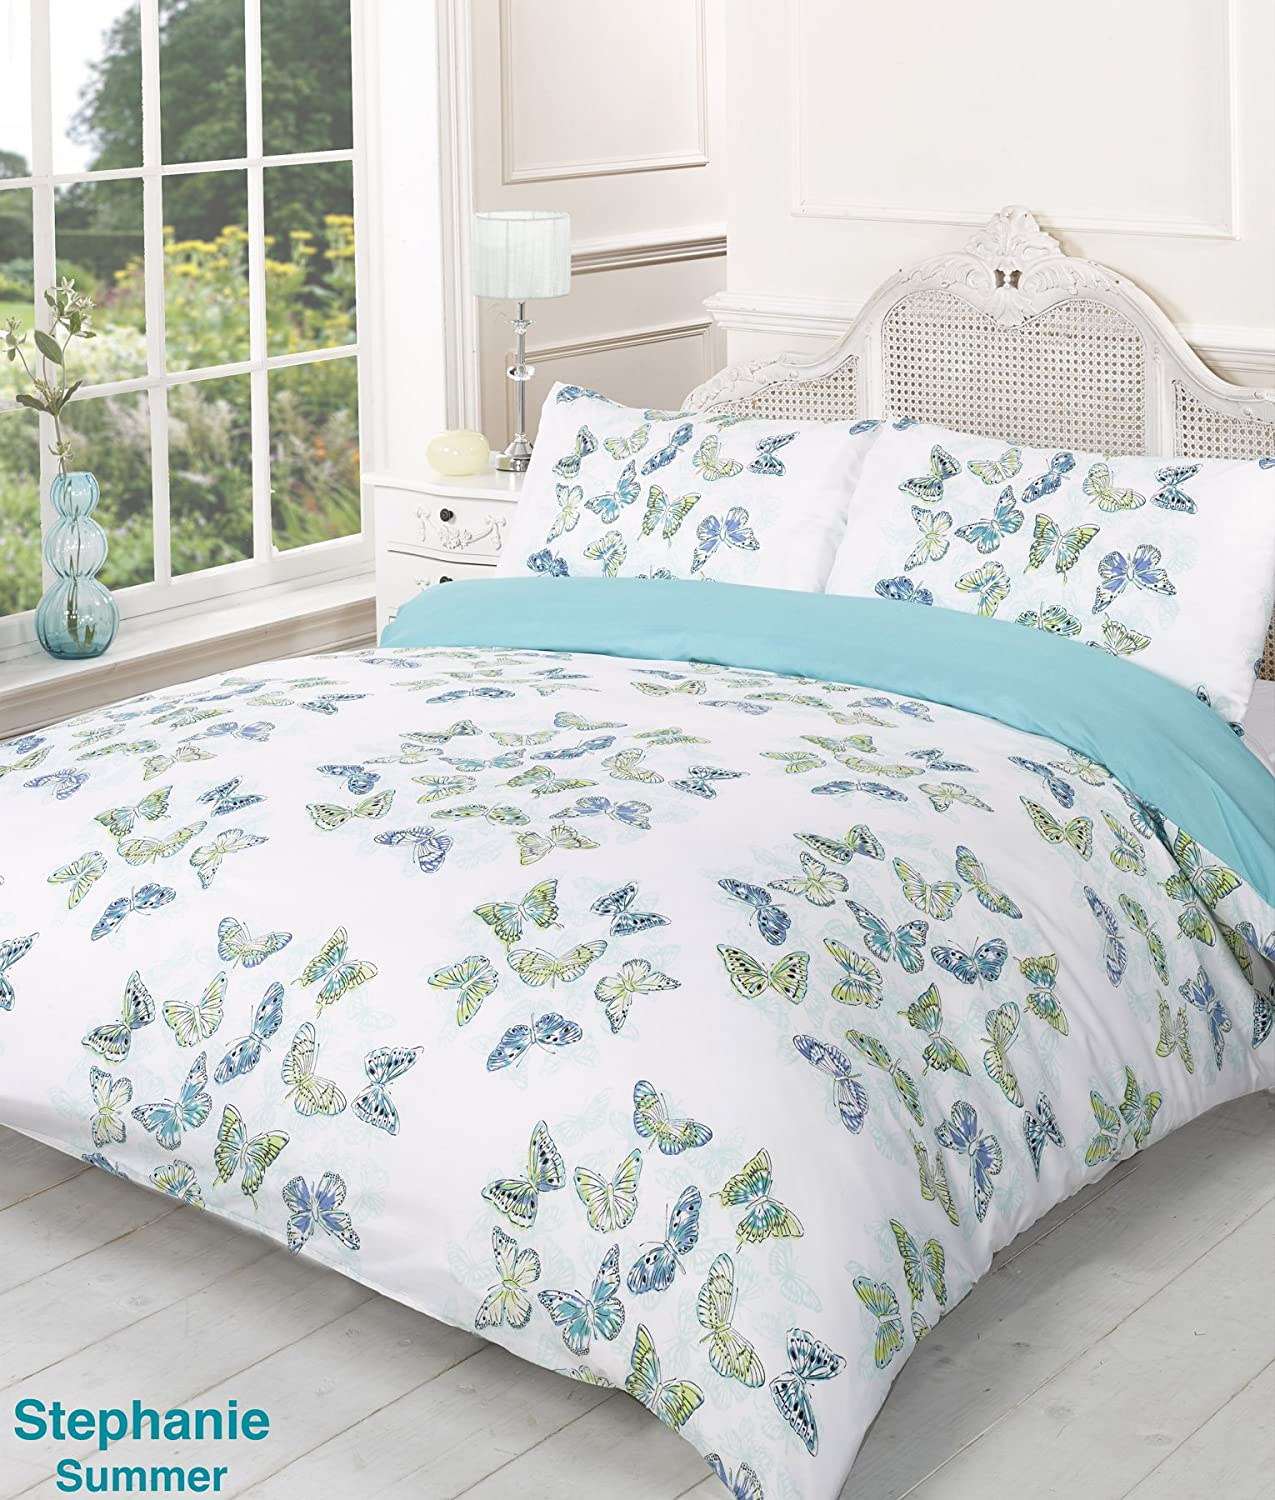 100 superking bed linen sets compare prices on super king size fitted sheet online - Green pixel bedding ...